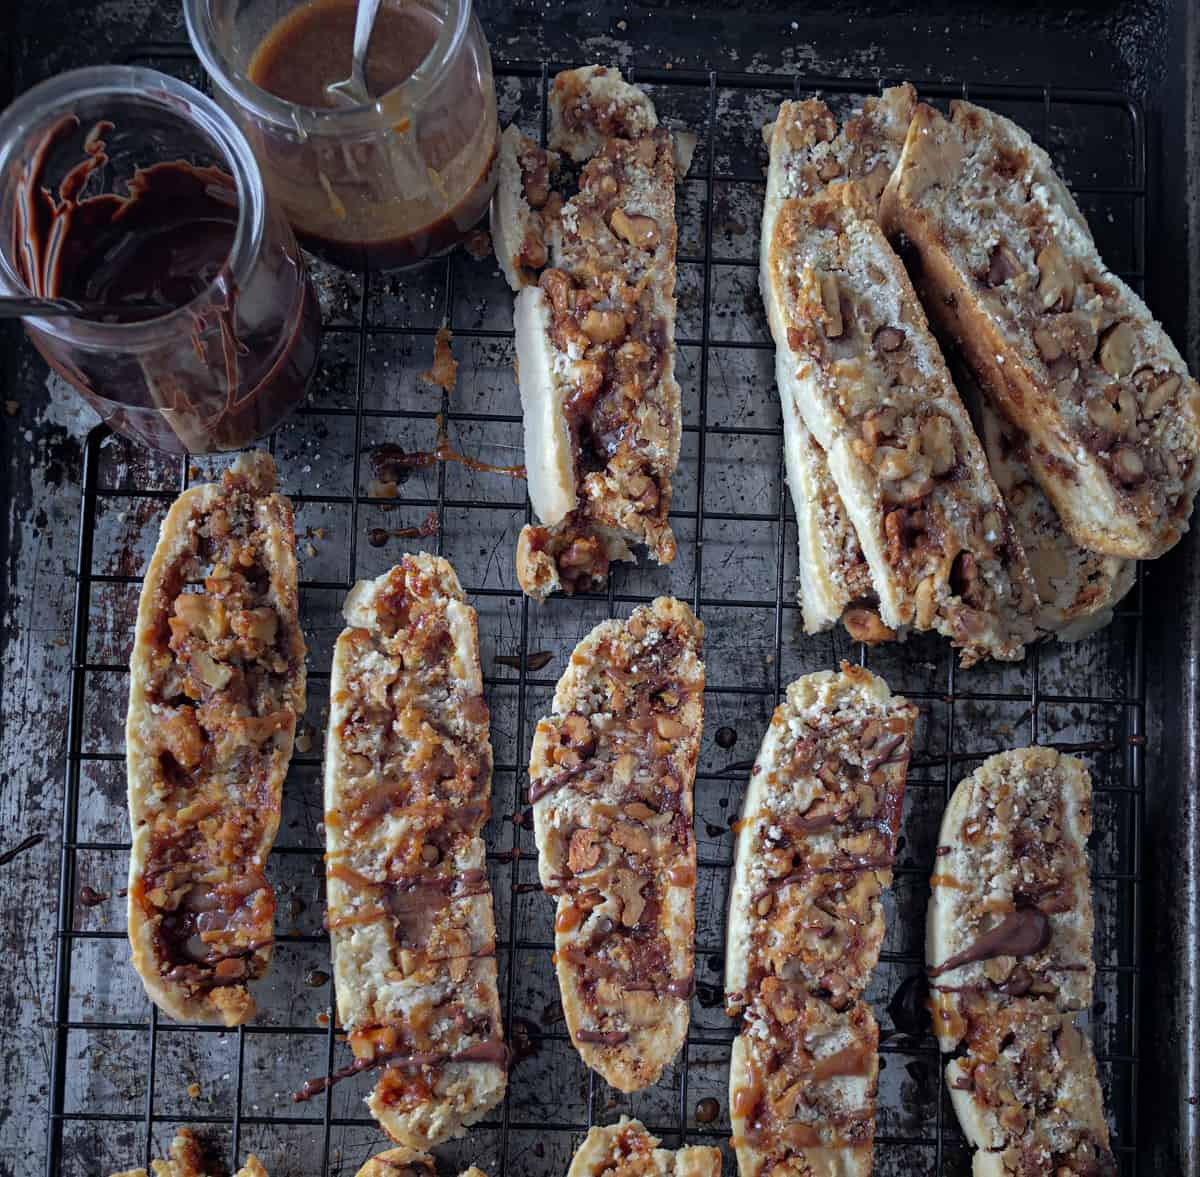 Baking sheet with biscotti and a pot of chocolate and caramel.